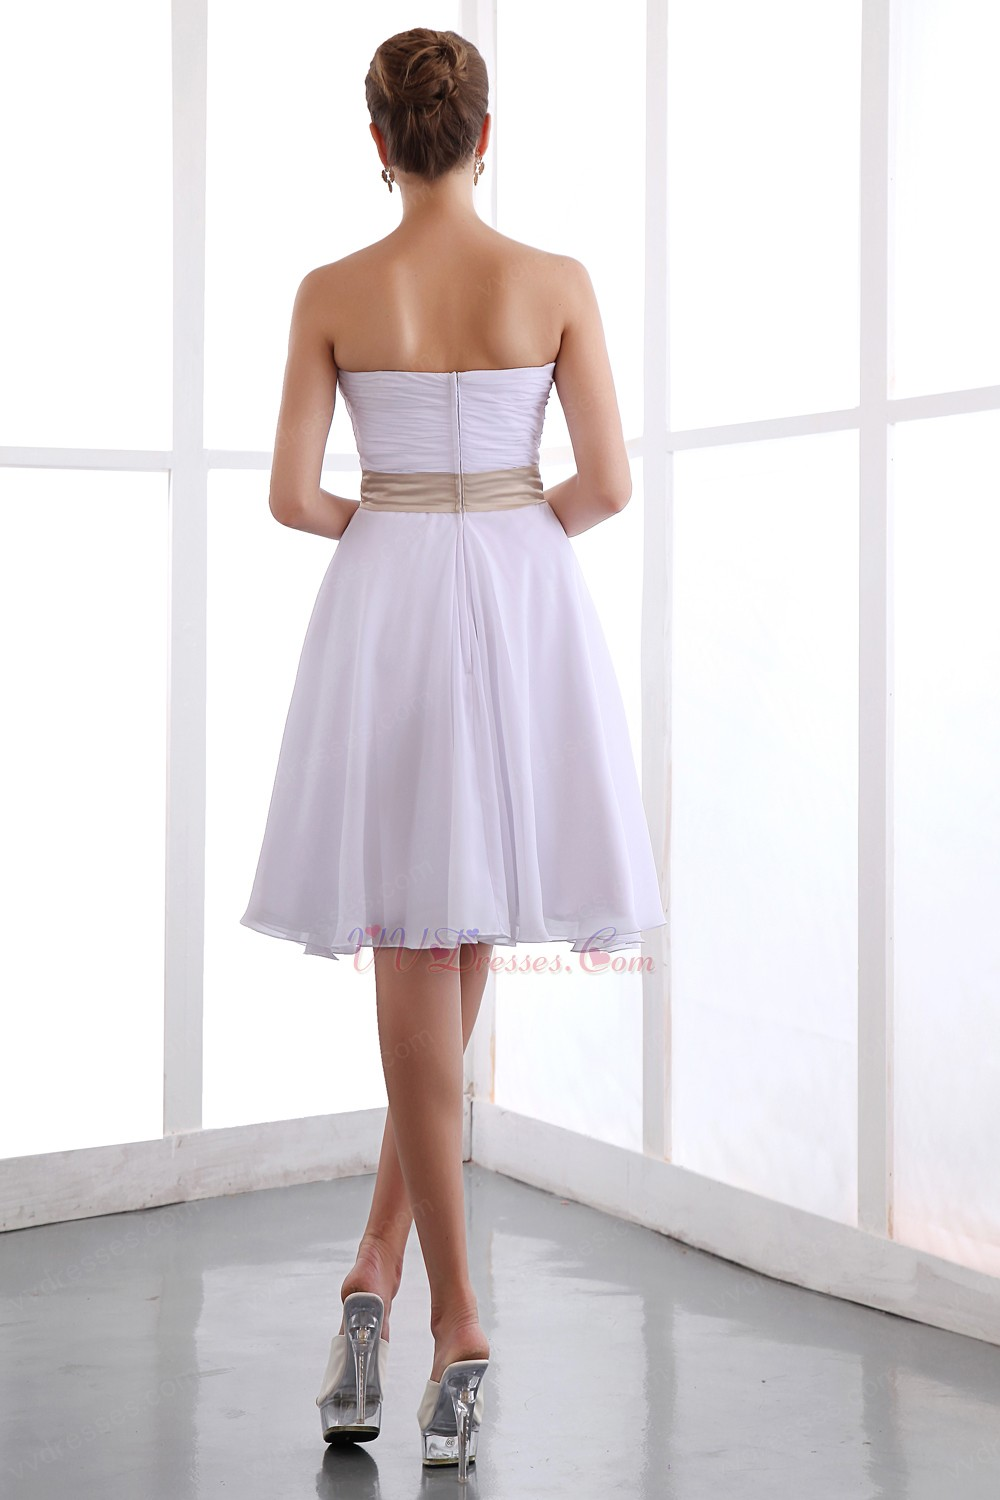 Bridesmaids dresses under 100 dollars wedding dresses asian for 100 dollar wedding dresses